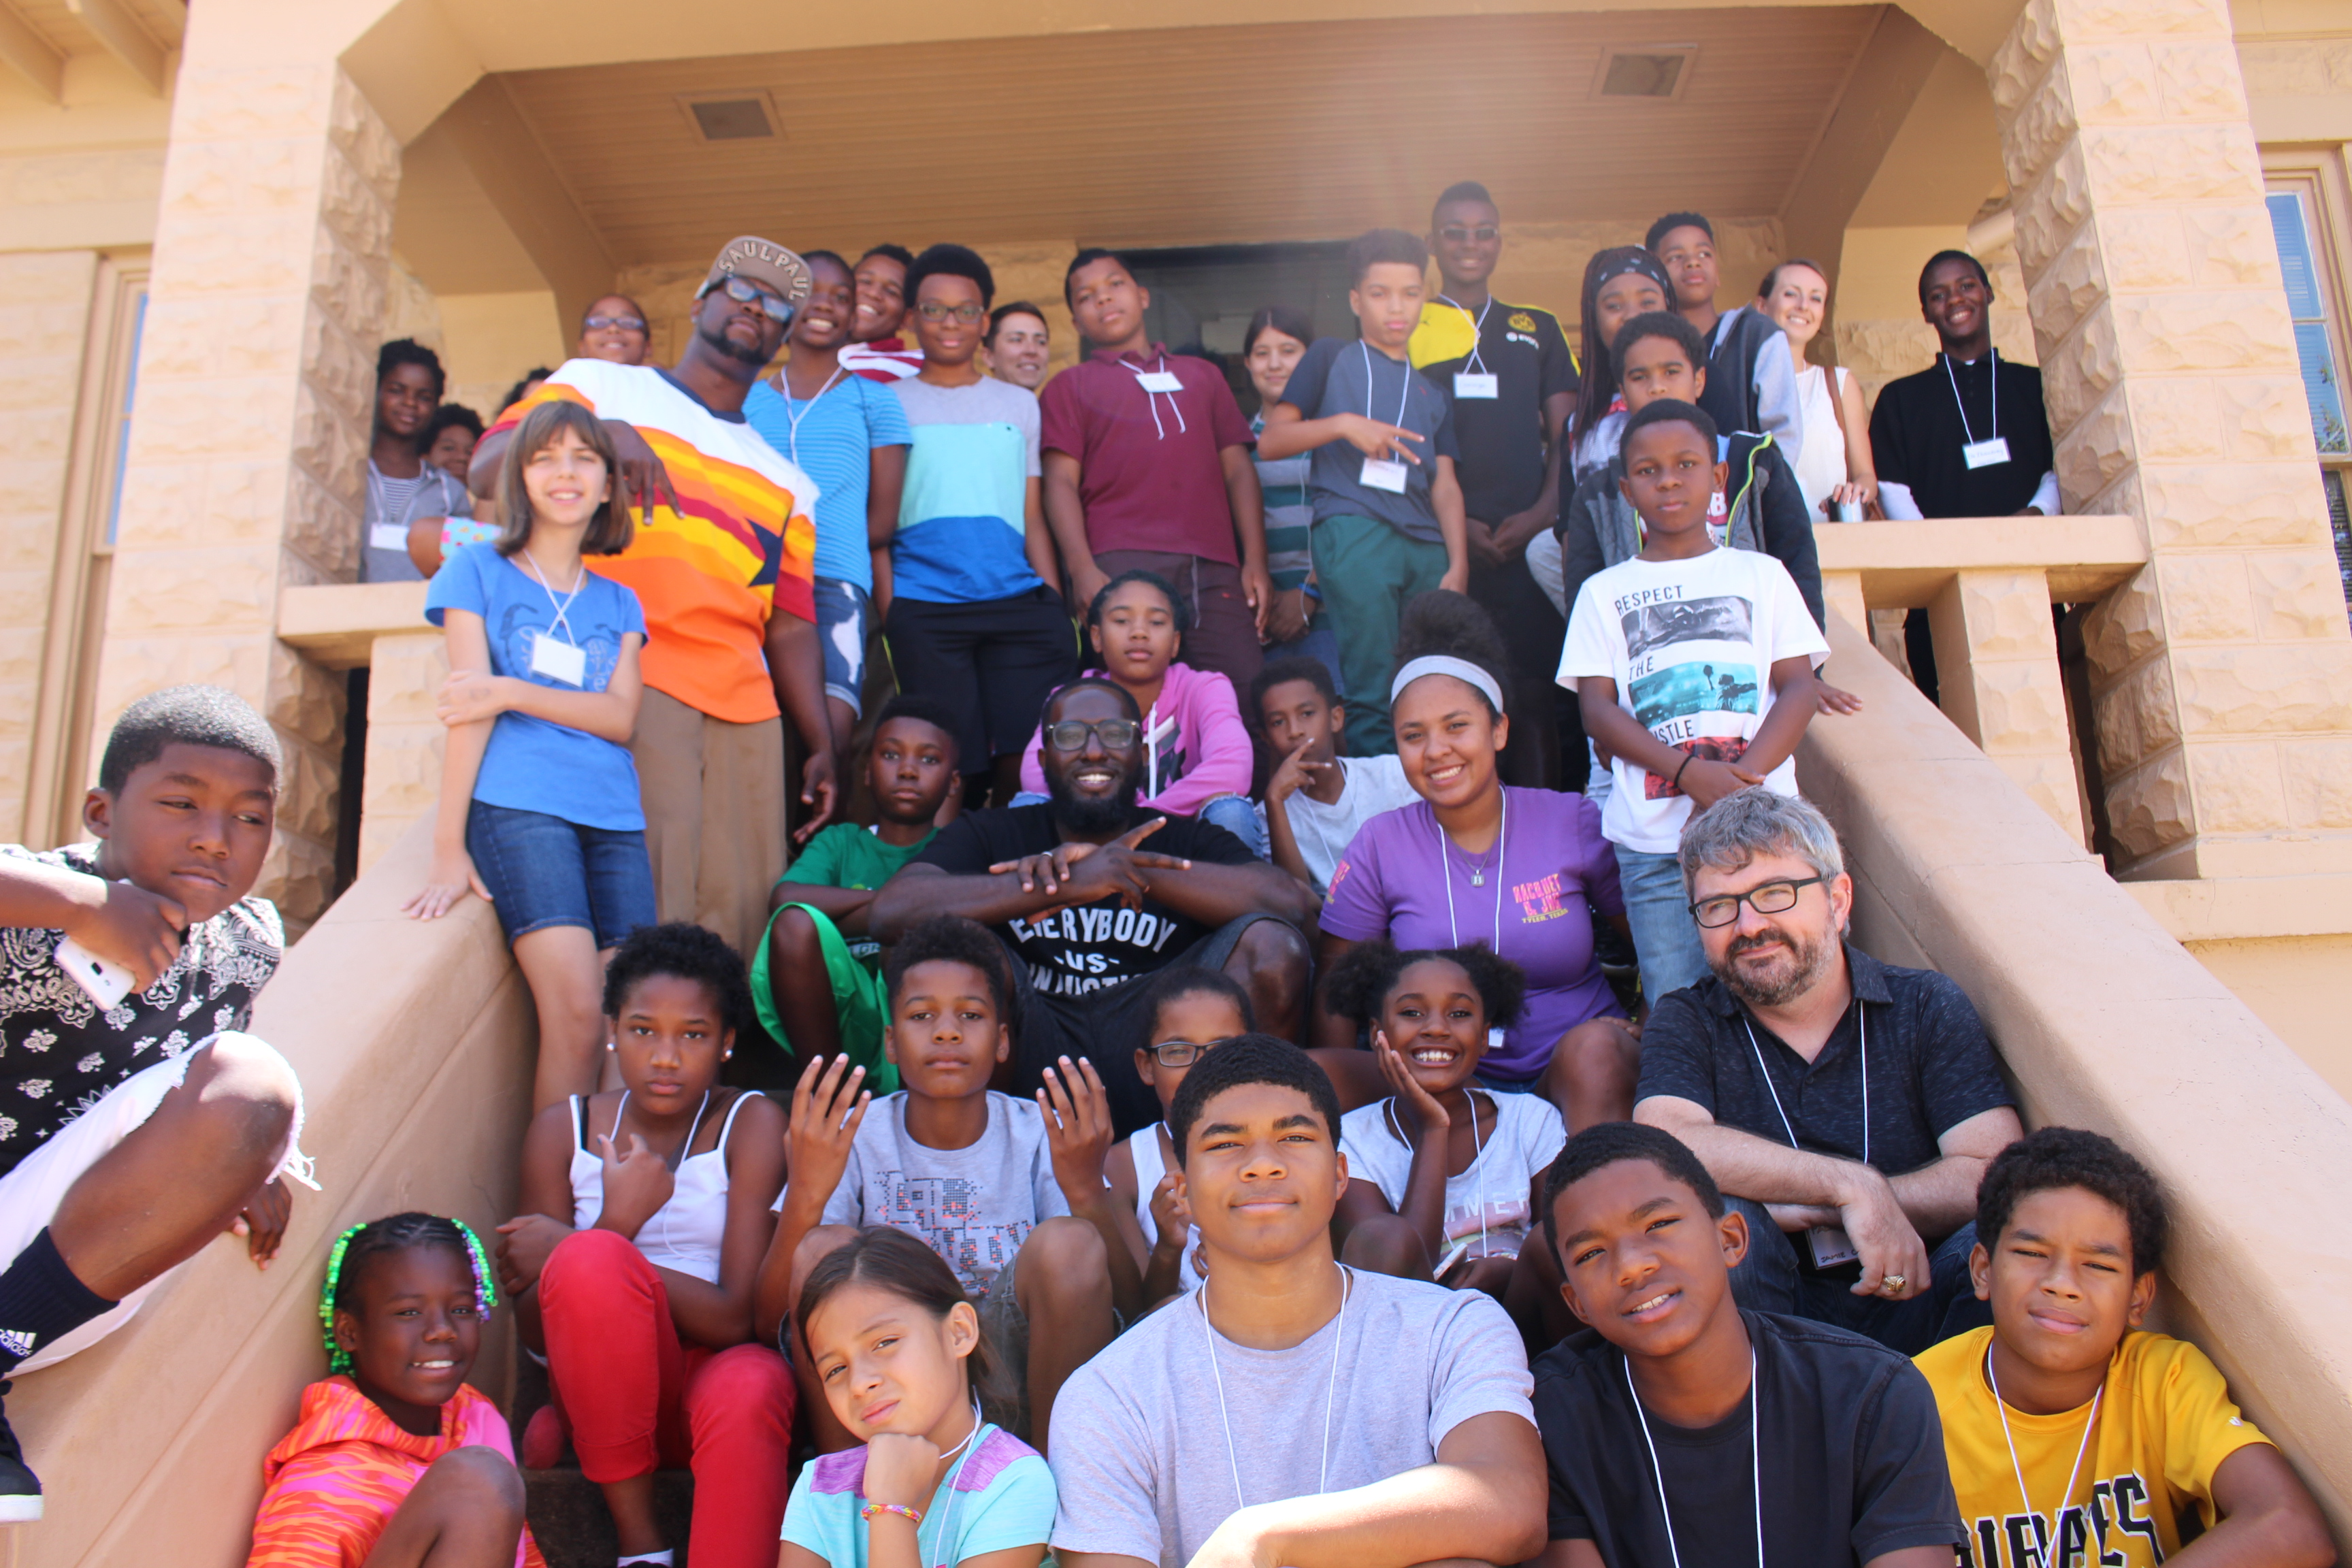 SaulPaul with the Kids from the Hip Hop Architecture Camp